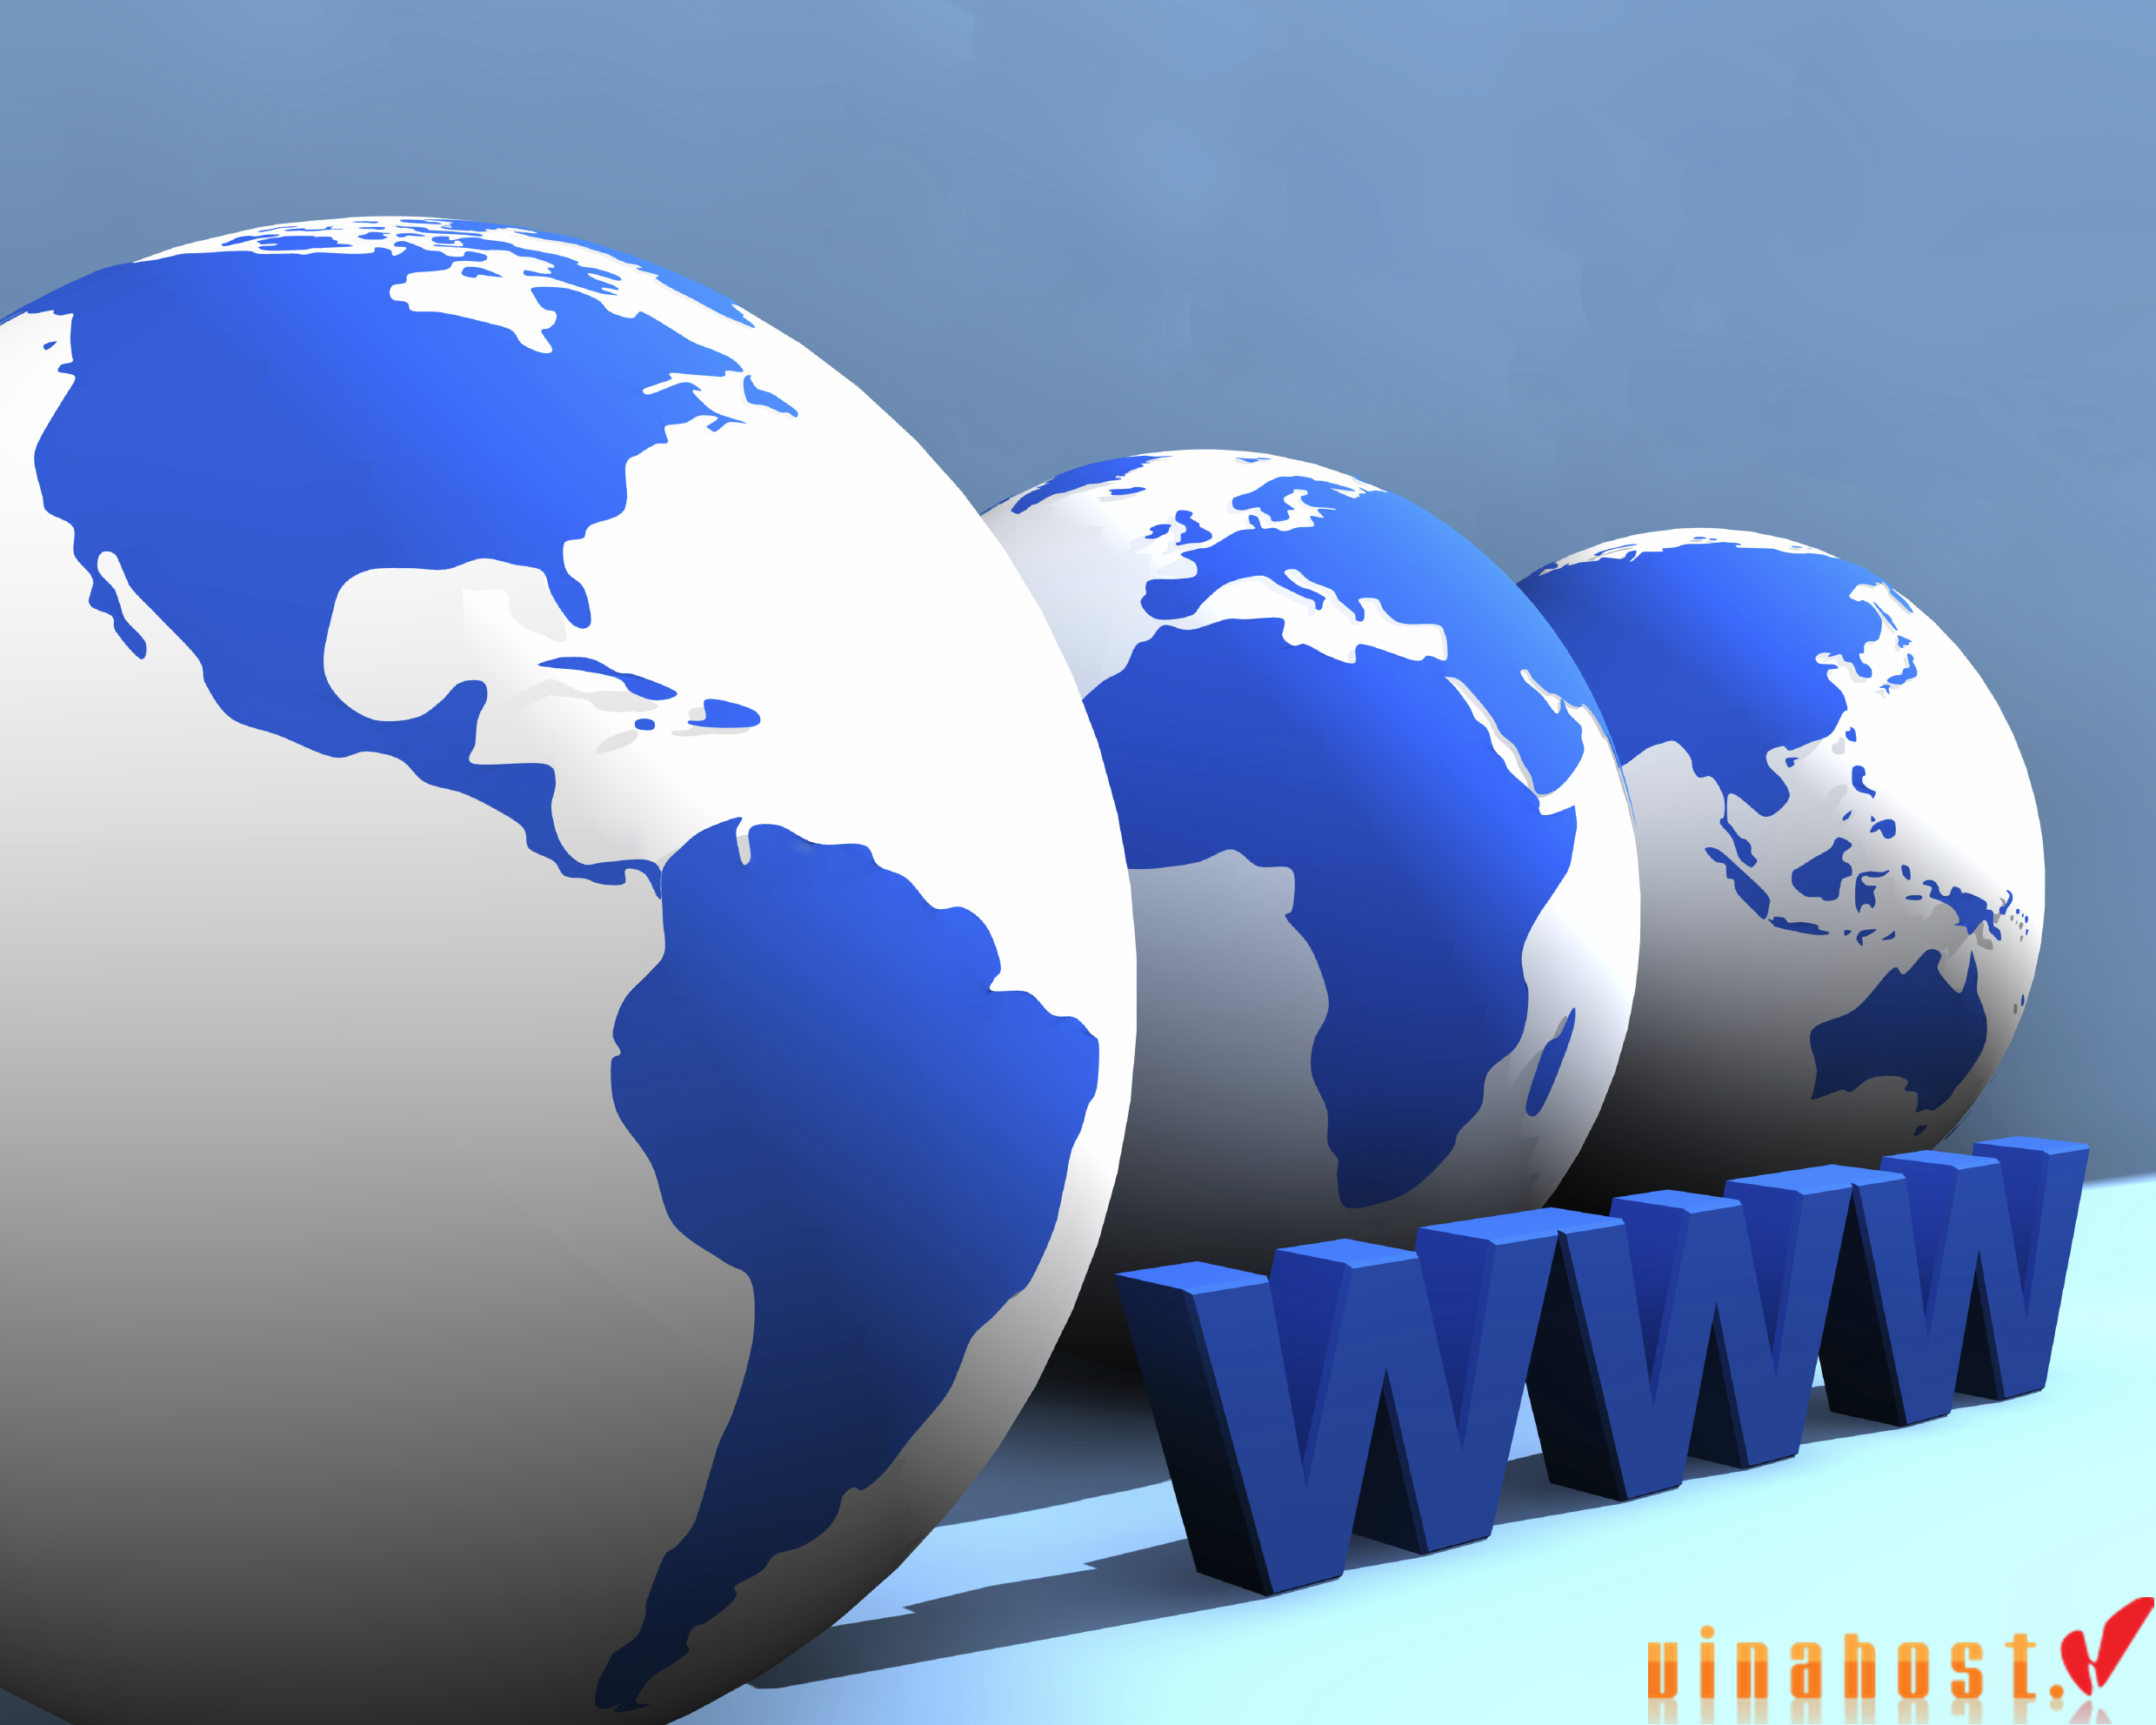 vinahost-How-to-buy-and-sell-domain-names-and-DNS-servers-for-China-3